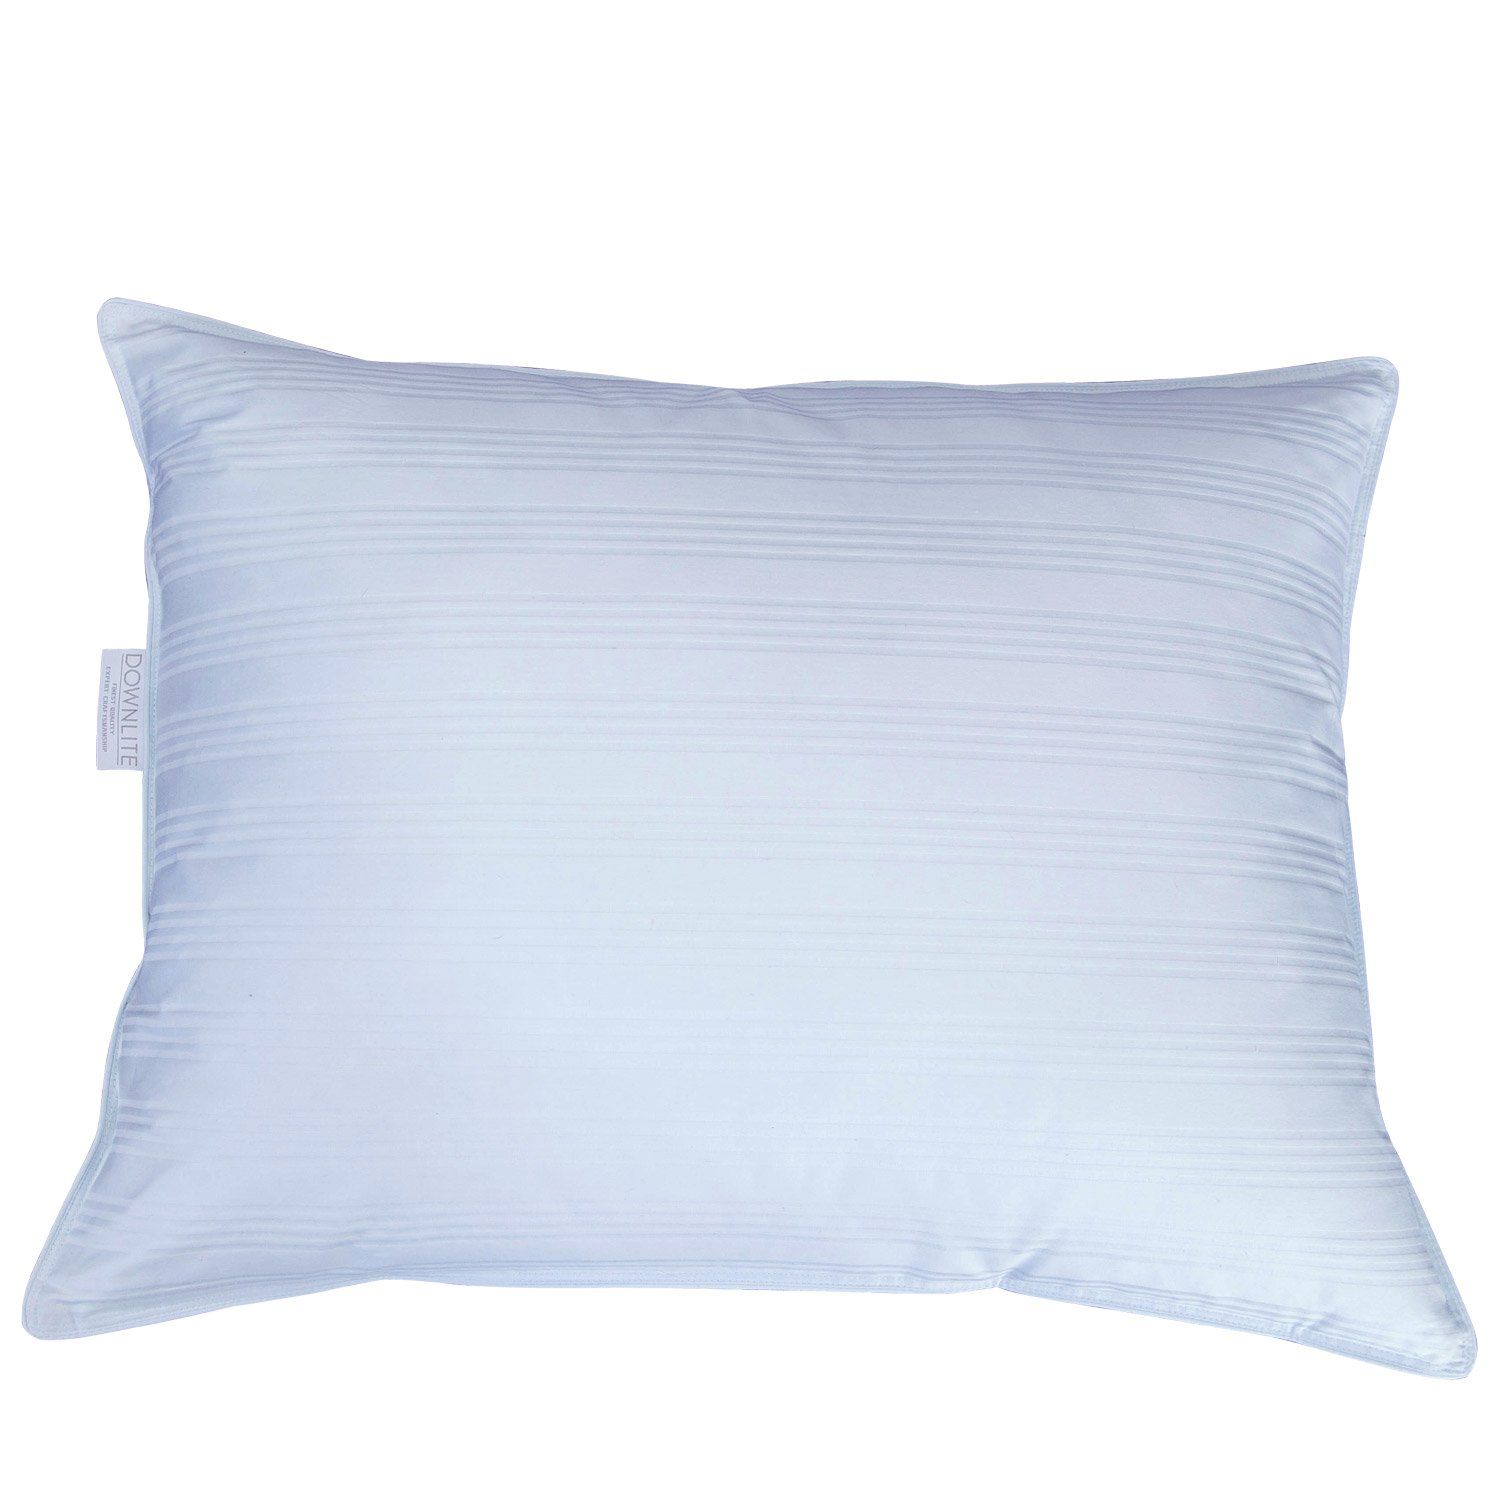 DOWNLITE Best Pillow Review by www.snoremagazine.com